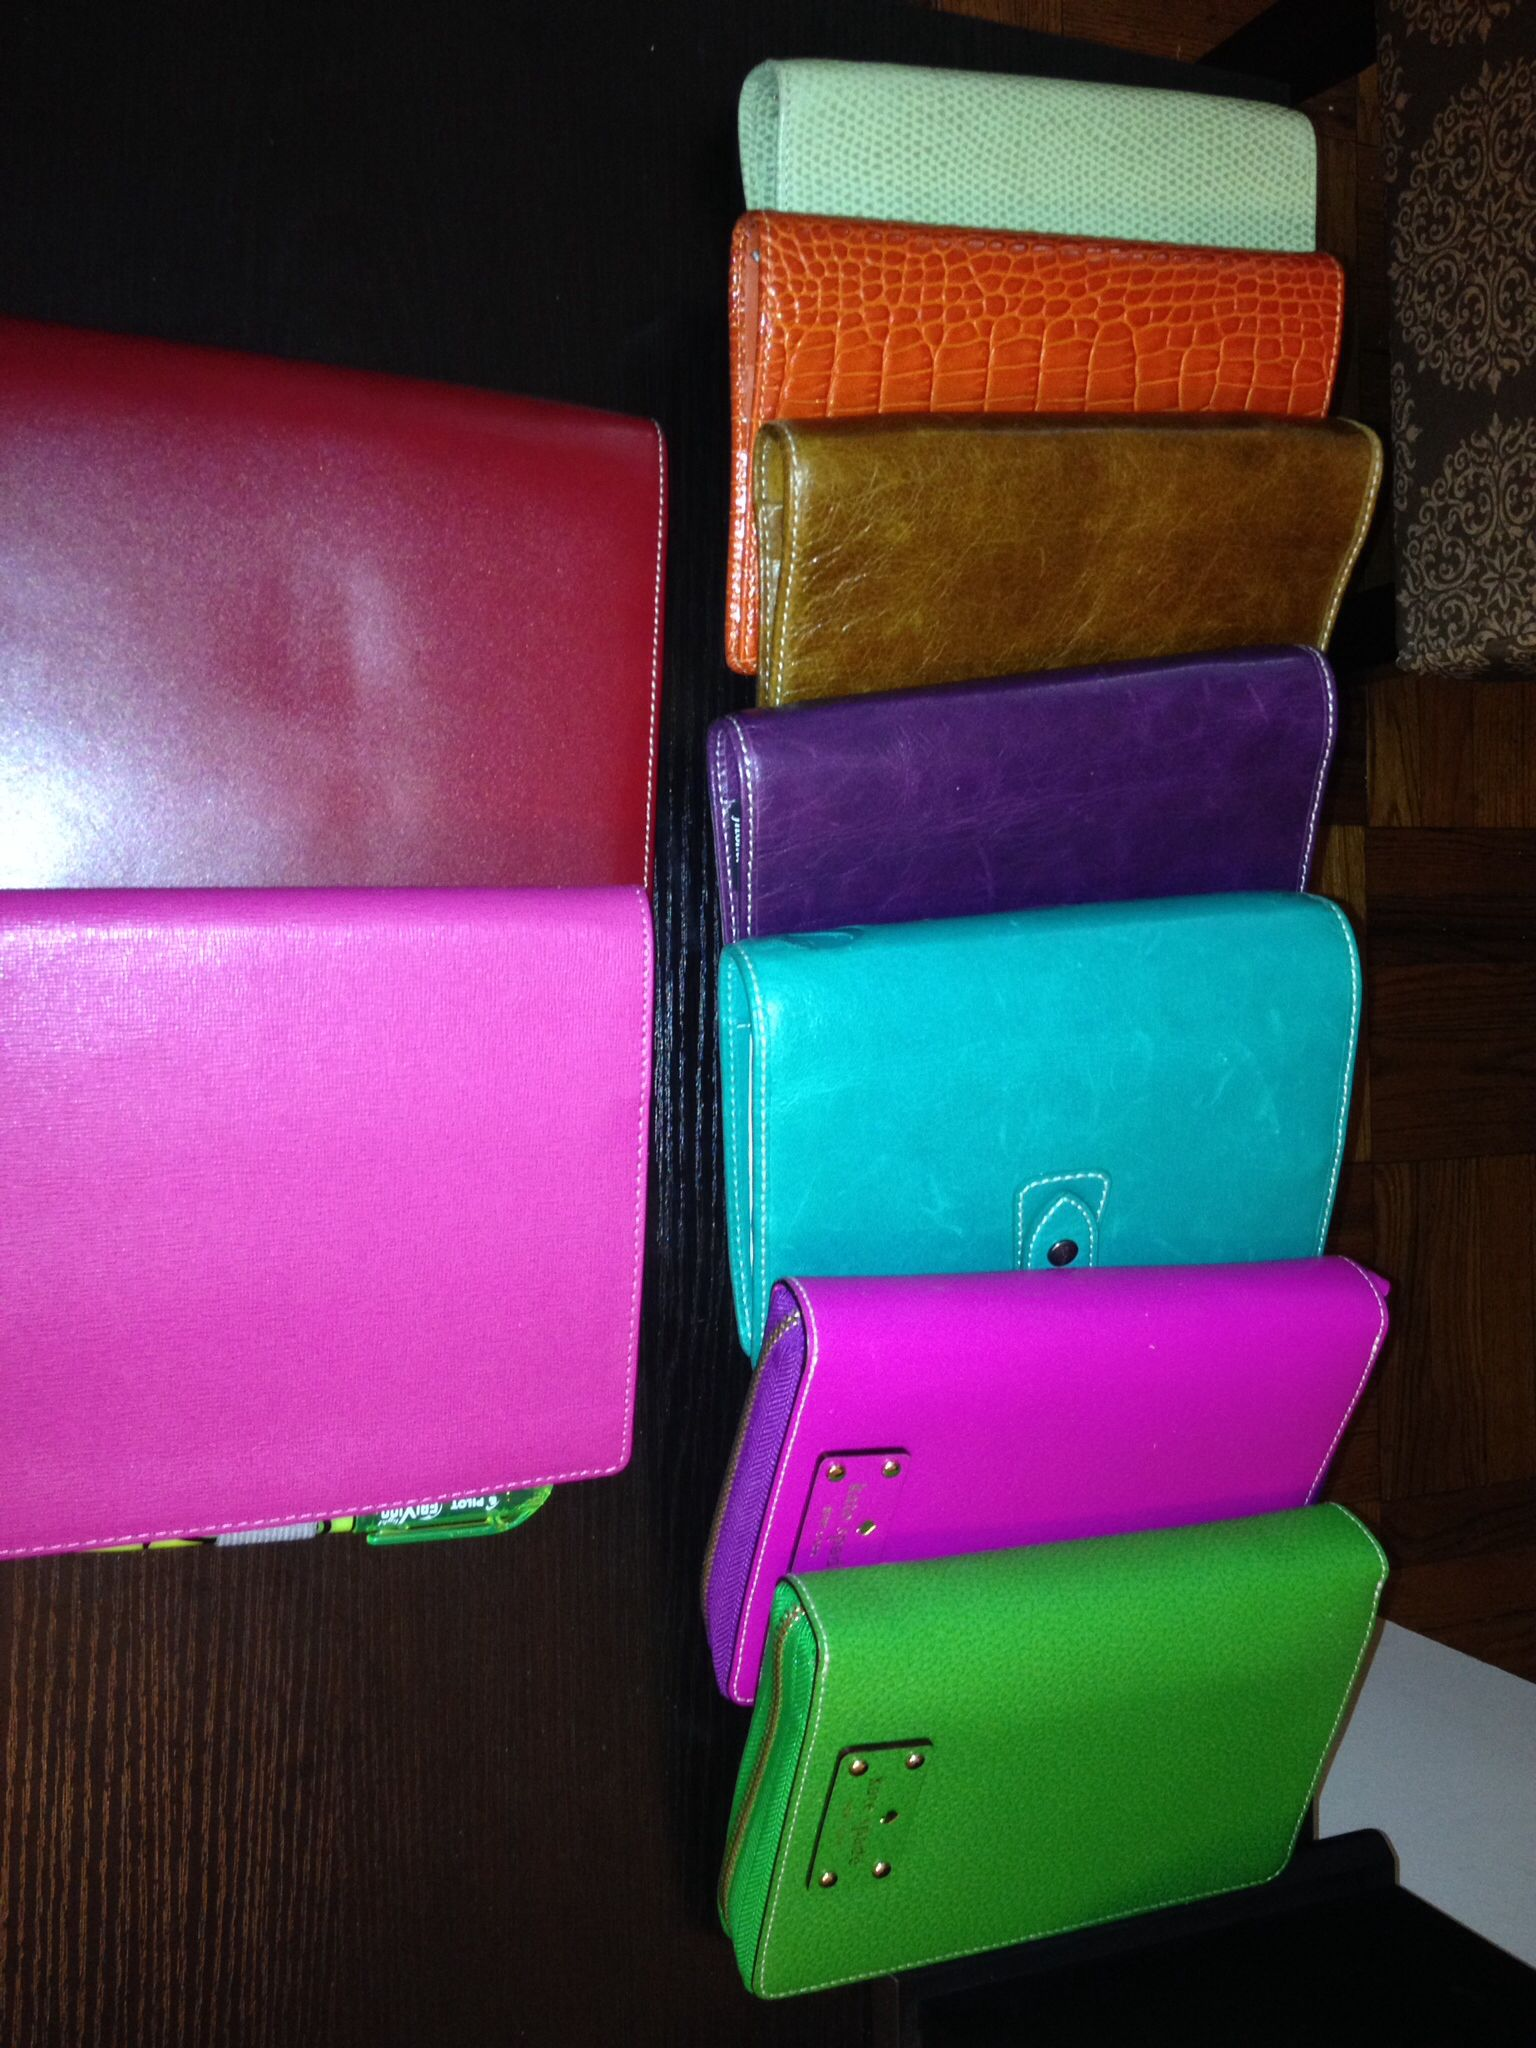 Some of my Filofax and Kate Spade planner binders.